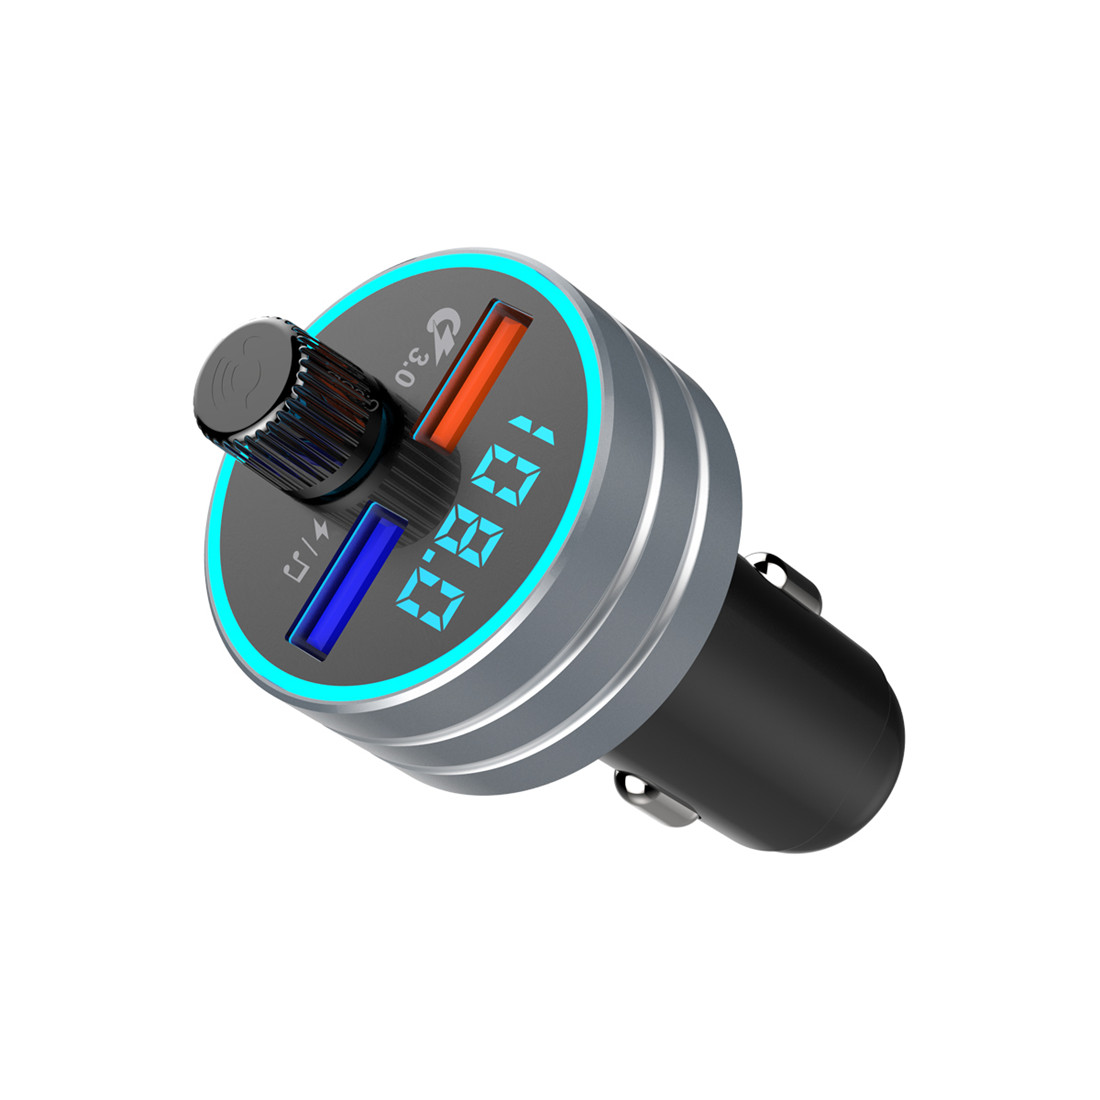 C1 Bluetooth FM Transmitter Bluetooth Adapter <font><b>Auto</b></font> Radio Sender, 2-Port USB <font><b>Ladeger</b></font>? t mit QC3.0 image